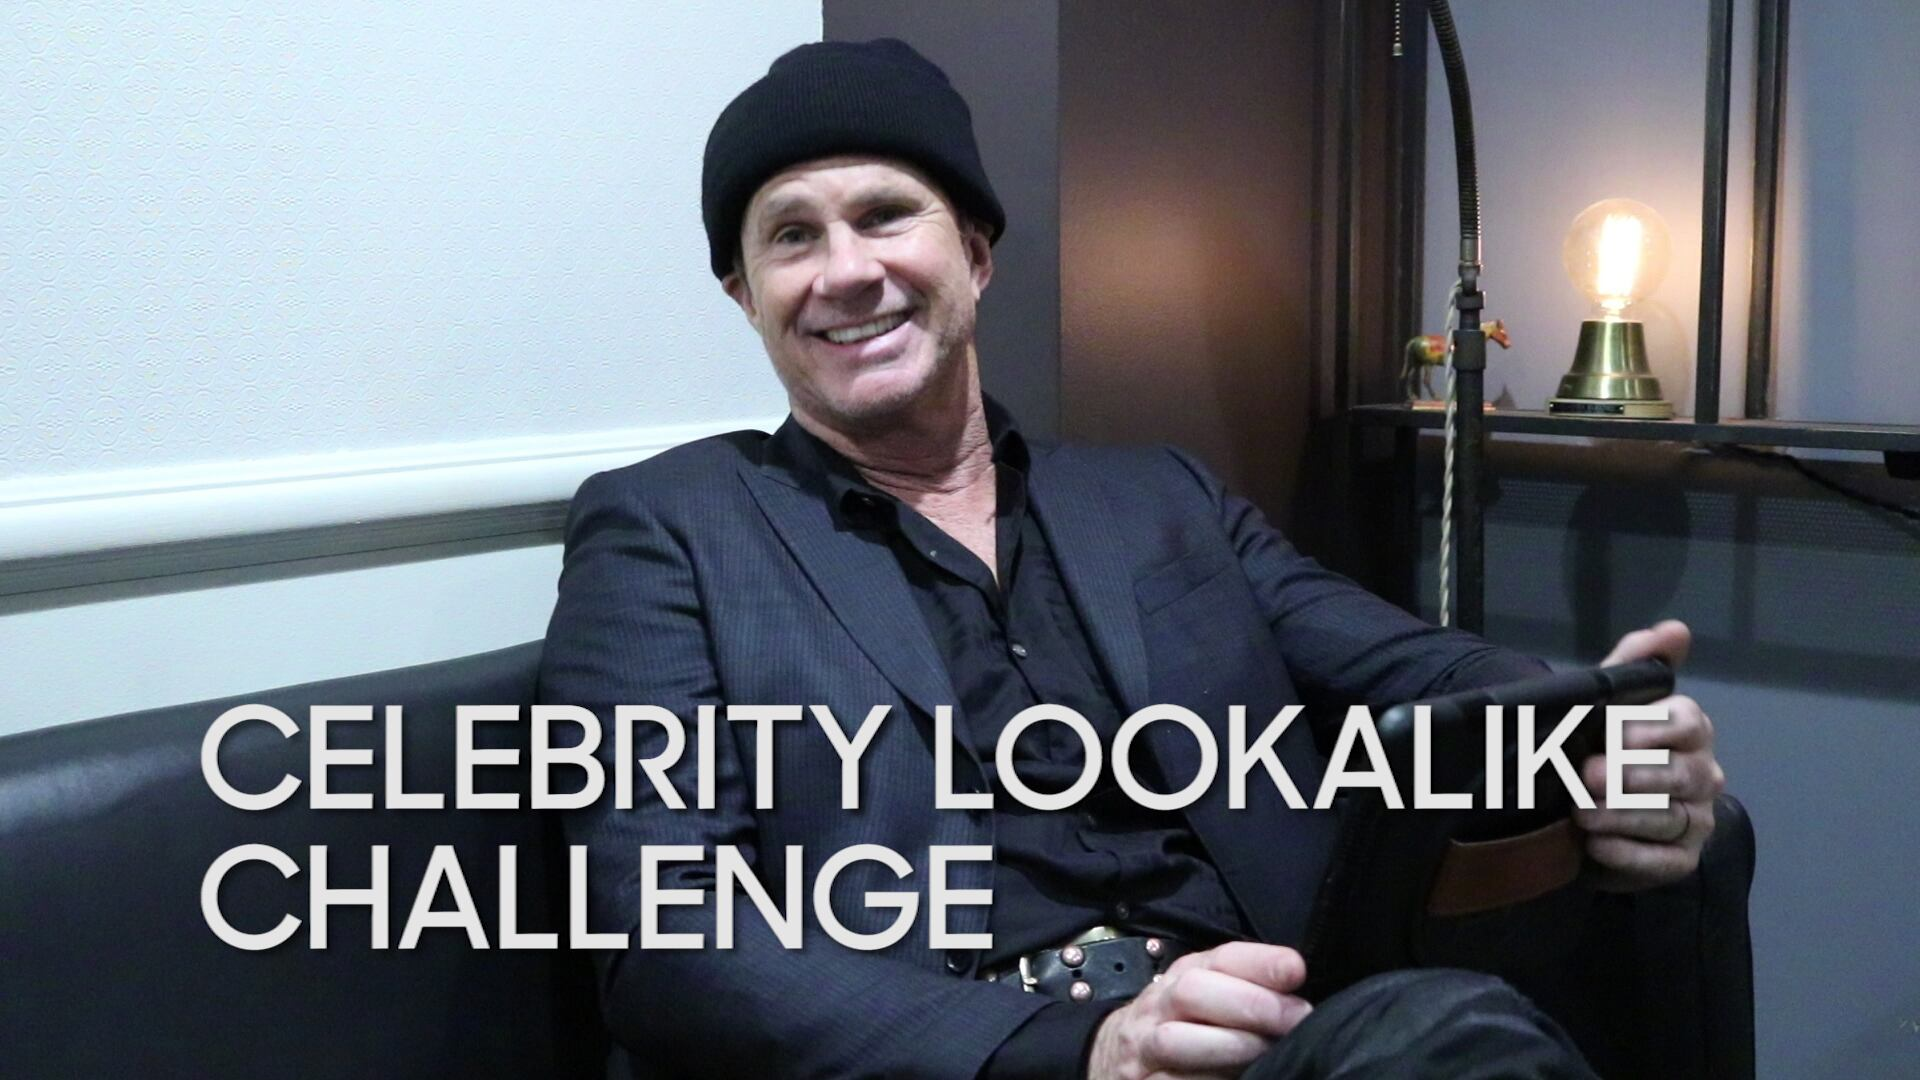 Celebrity Lookalike Challenge with Chad Smith